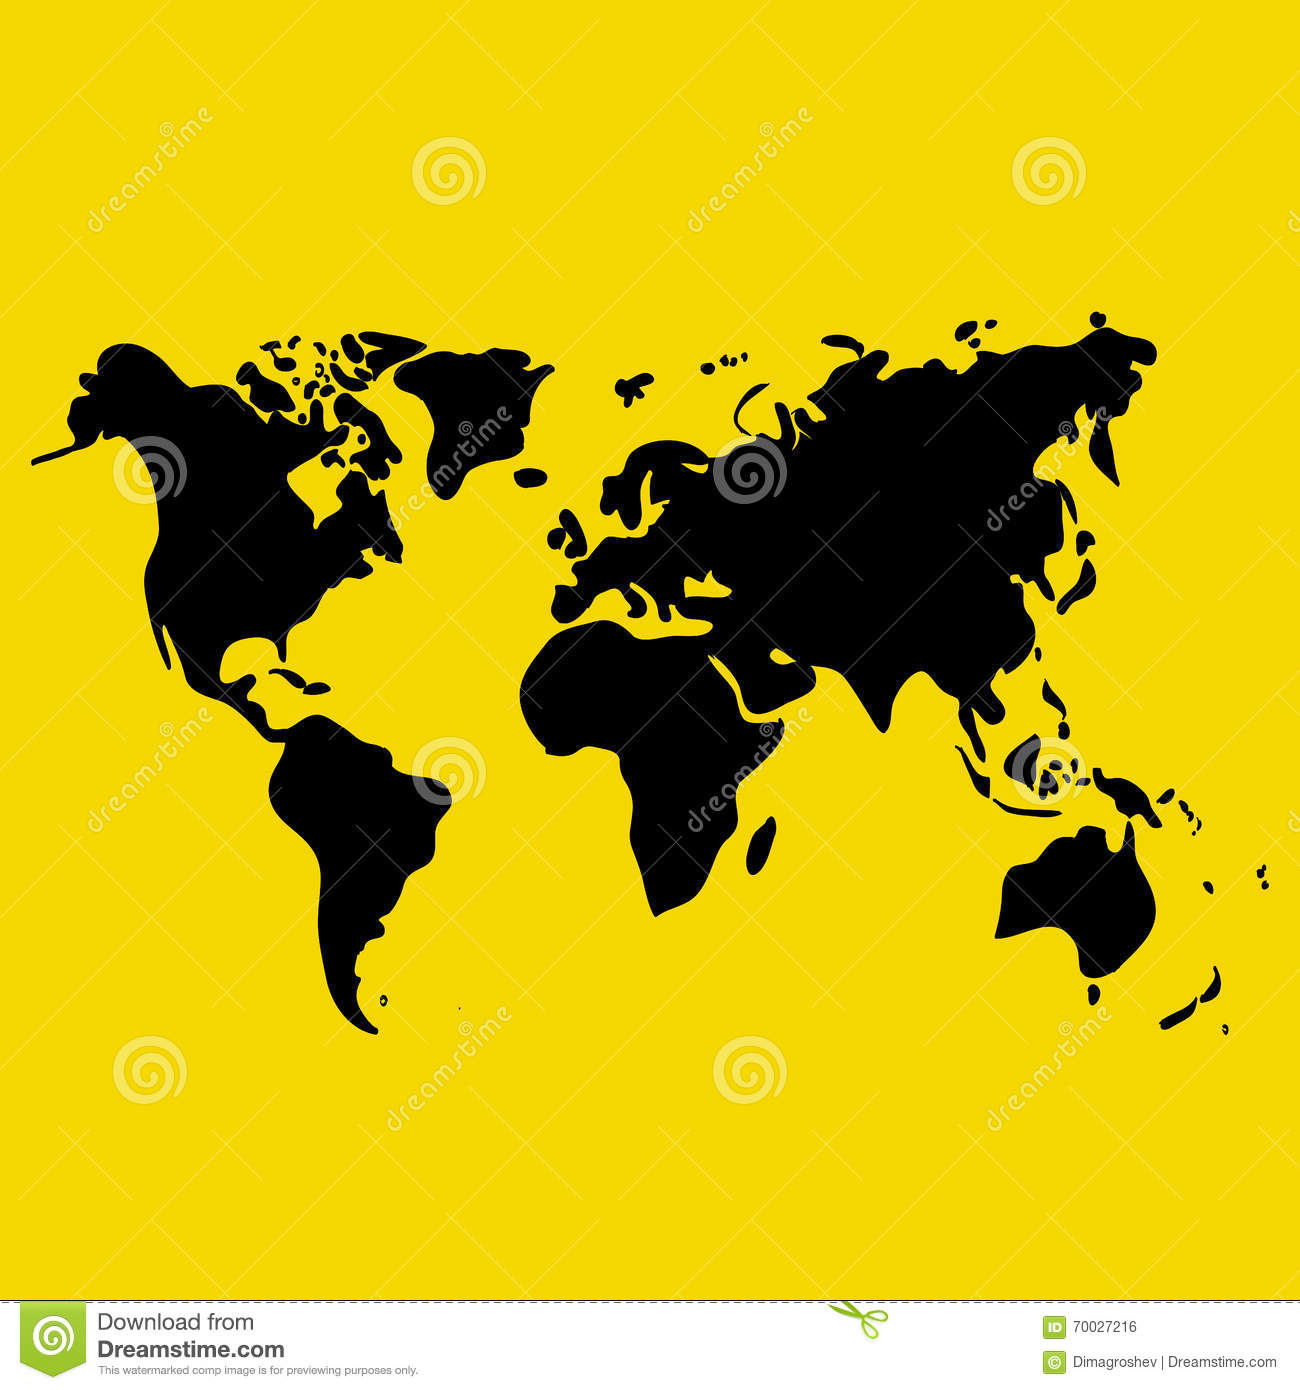 Vector hand drawn black world map on yellow background doodle download comp gumiabroncs Gallery